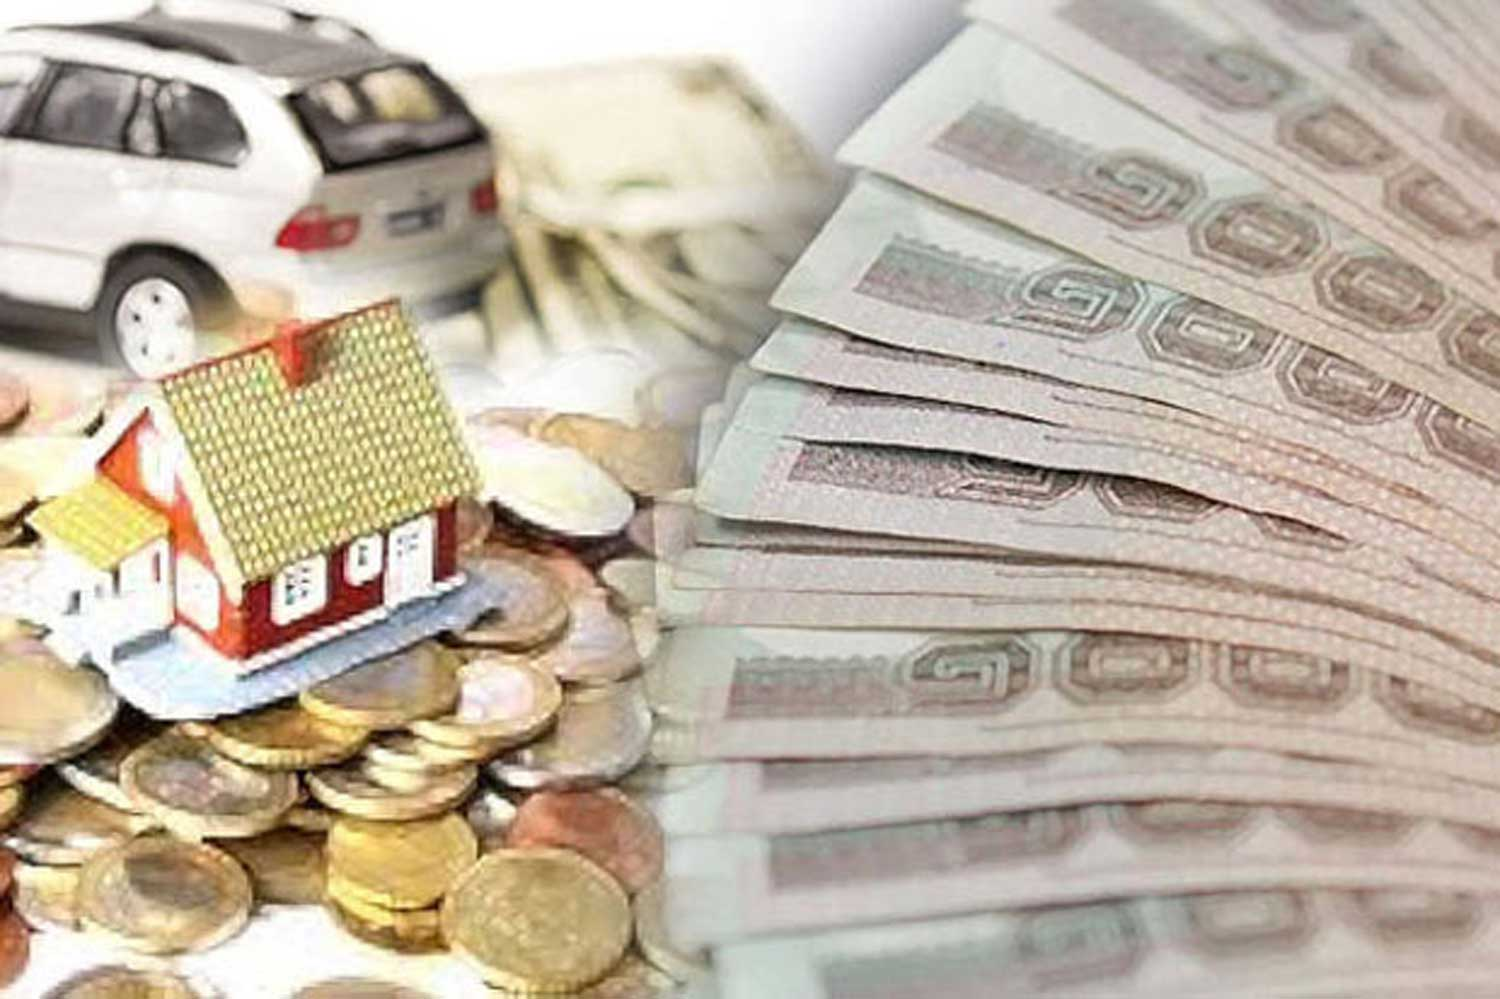 The National Economic and Social Development Council is concerned over housing debts, which have increased since mid-2017.